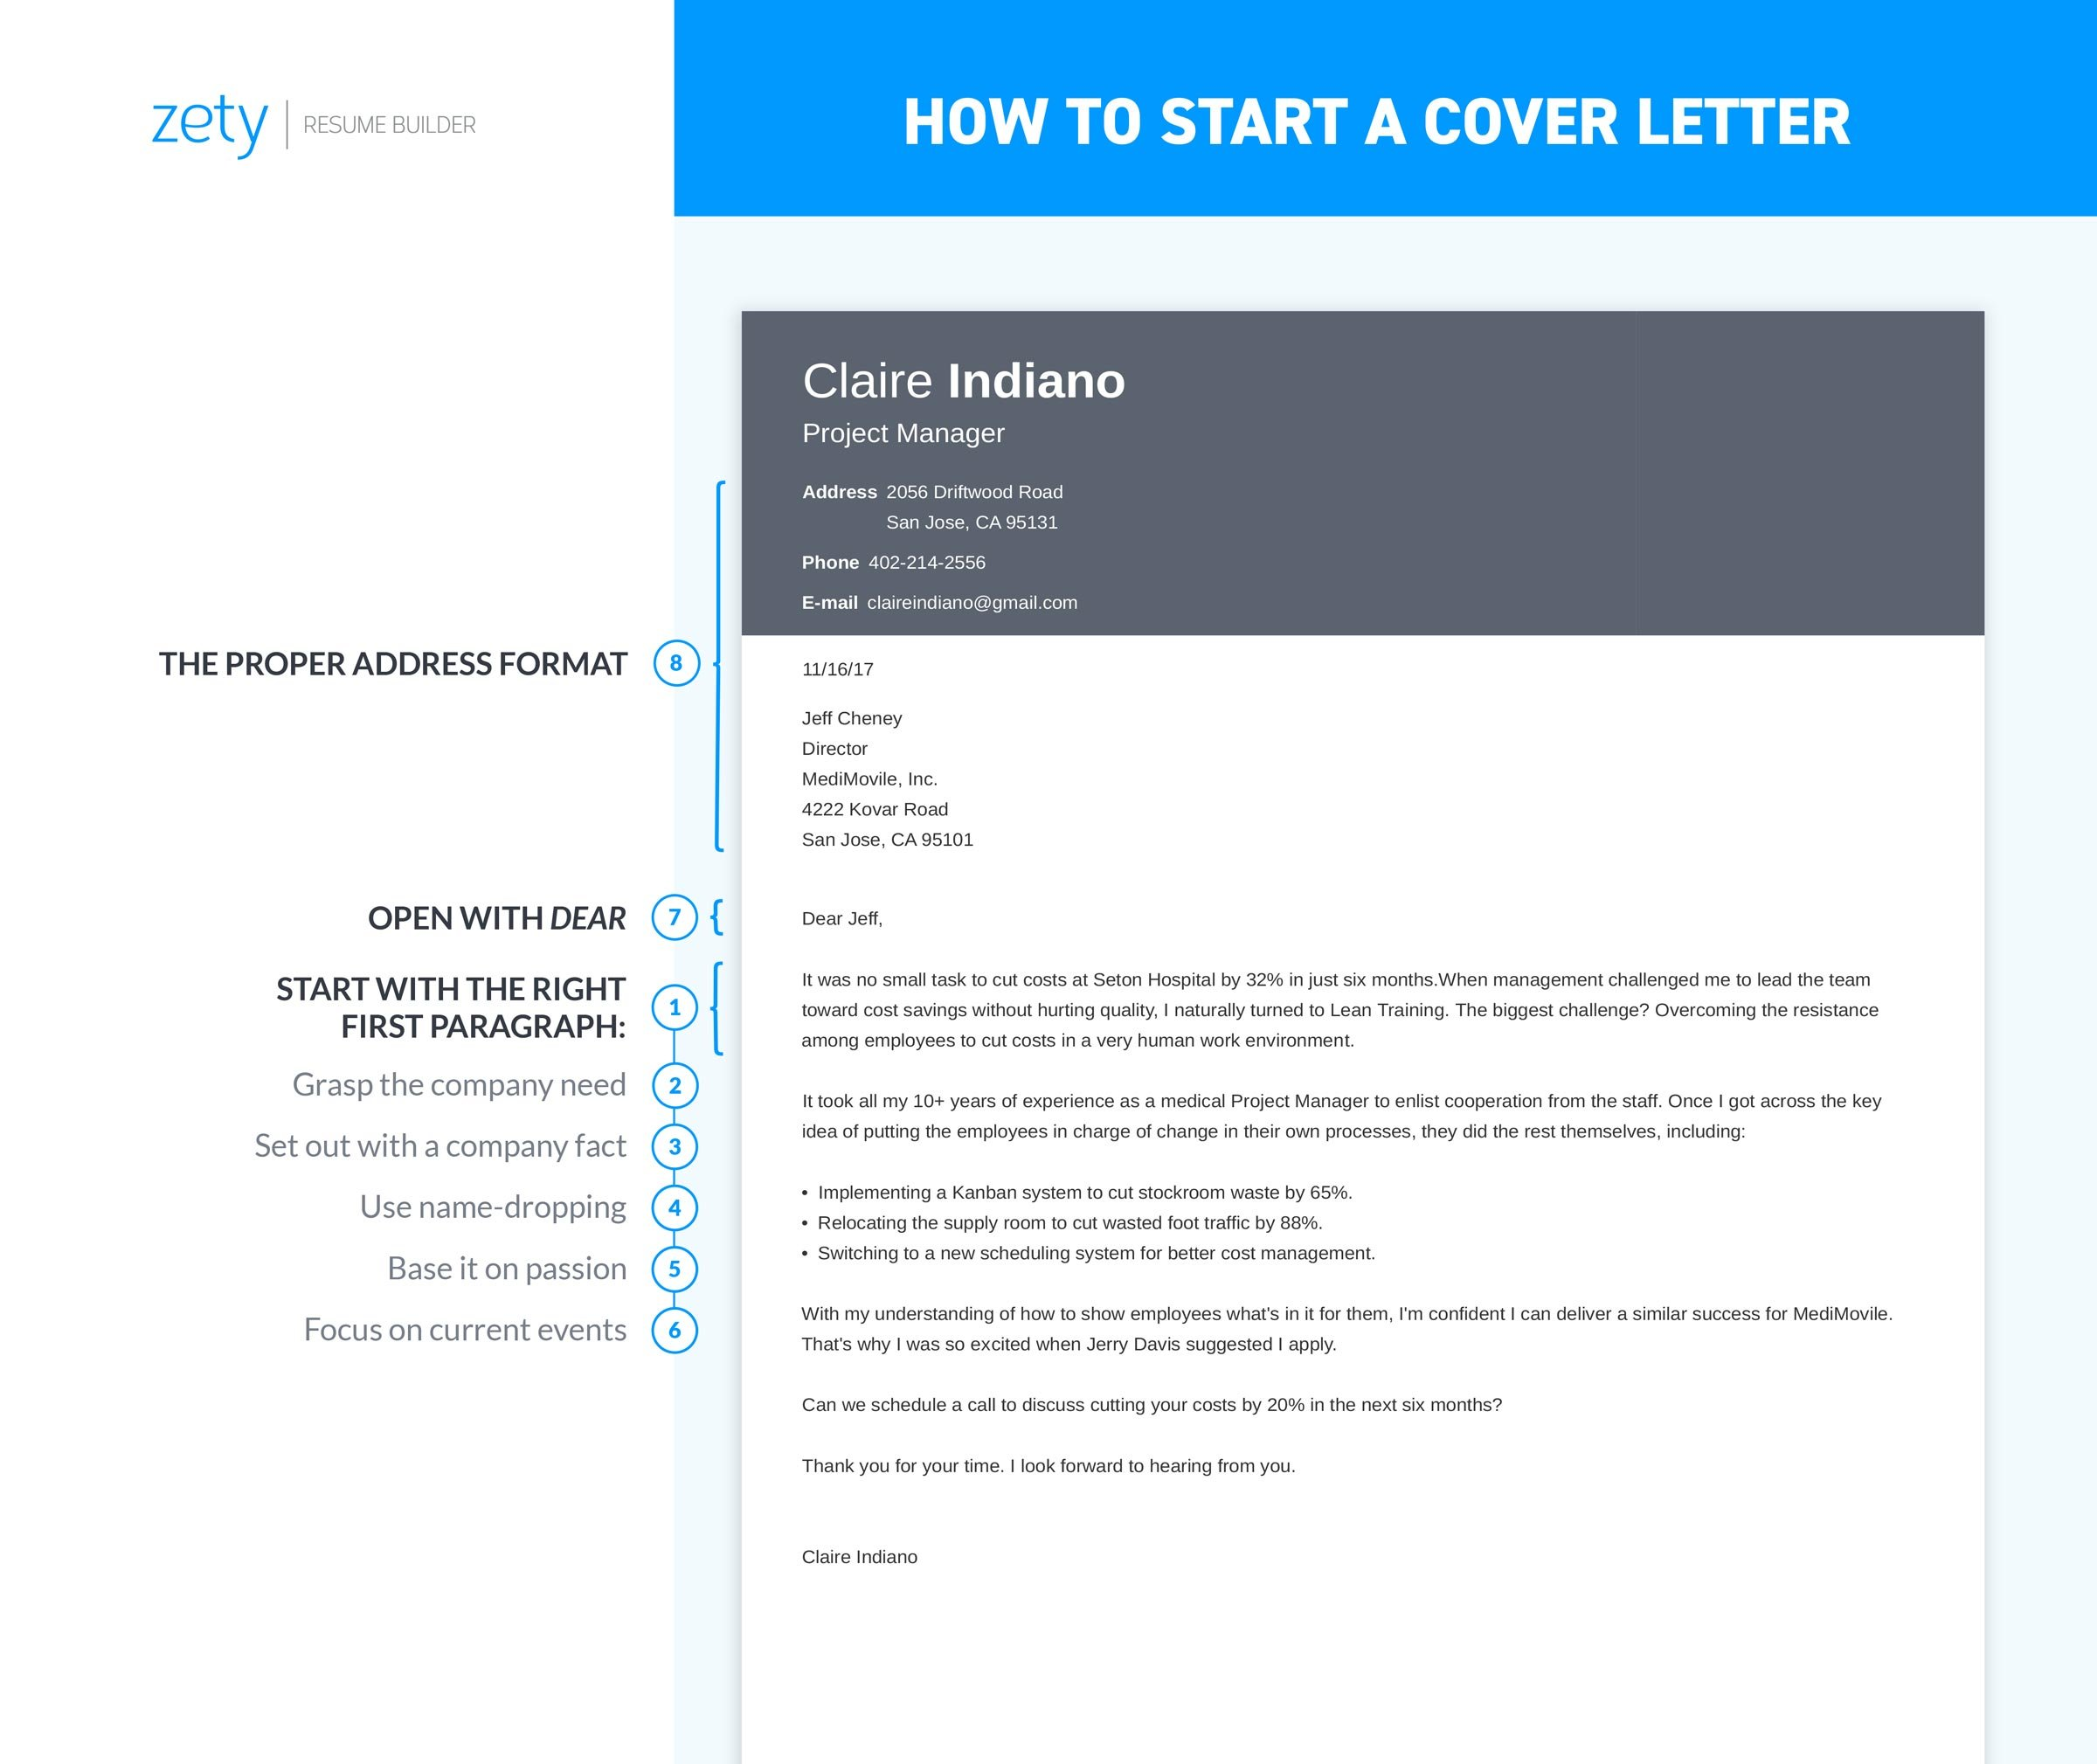 How To Start Cover Letter | How To Start A Cover Letter 20 Great Opening Lines Paragraphs